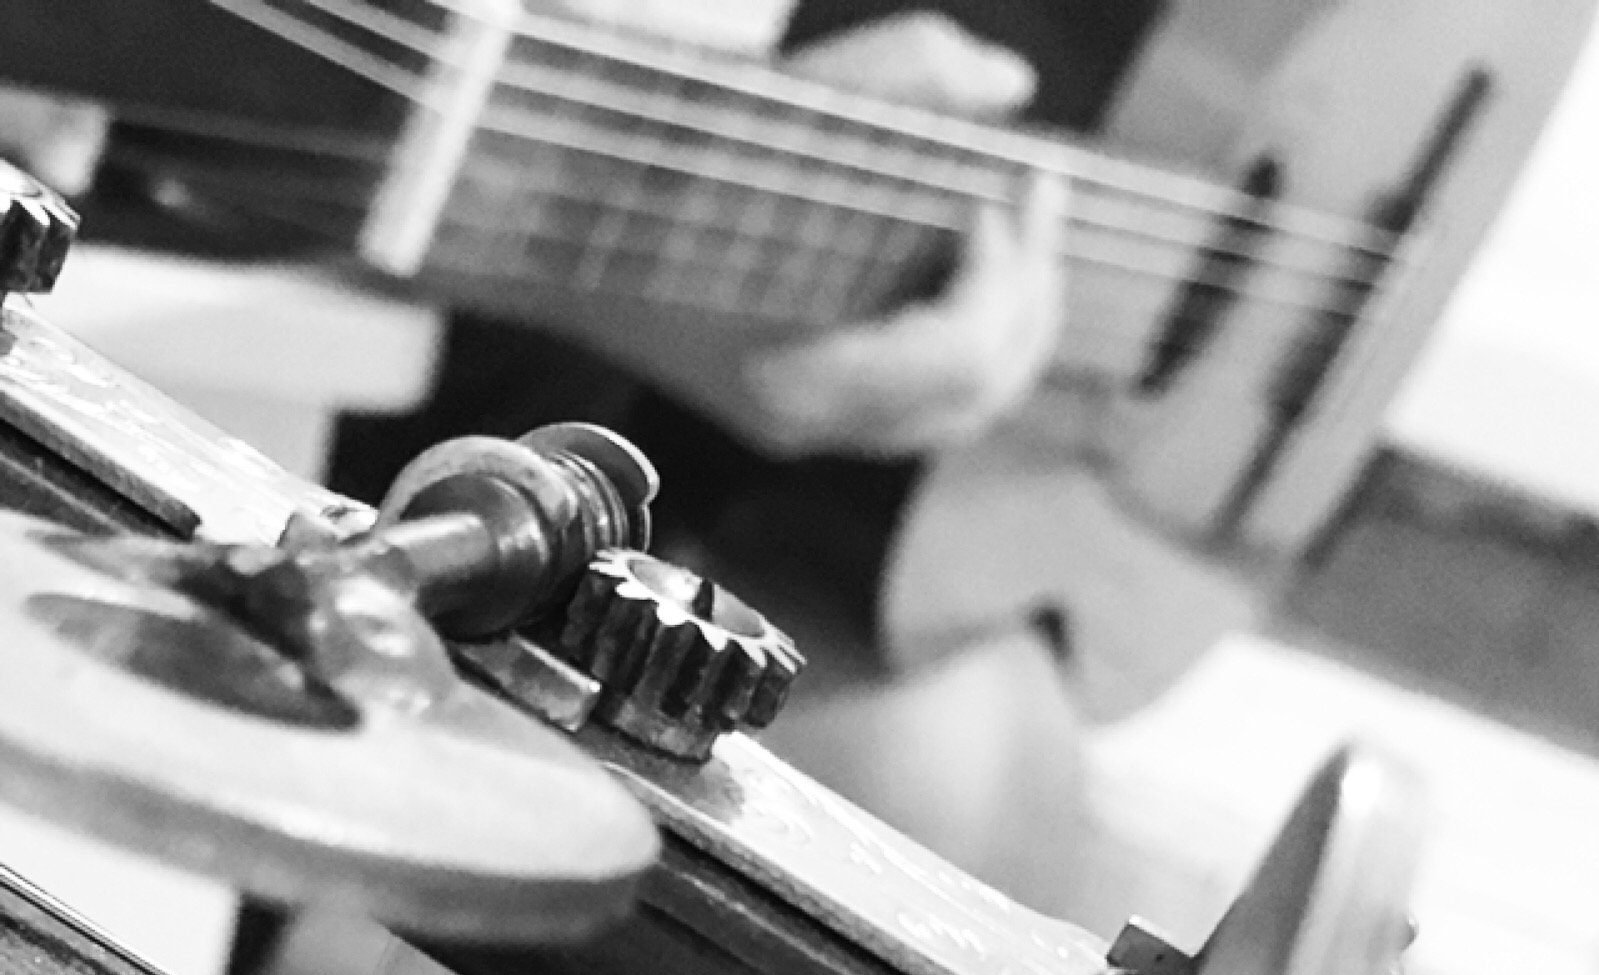 You need rest for creative processes like songwriting